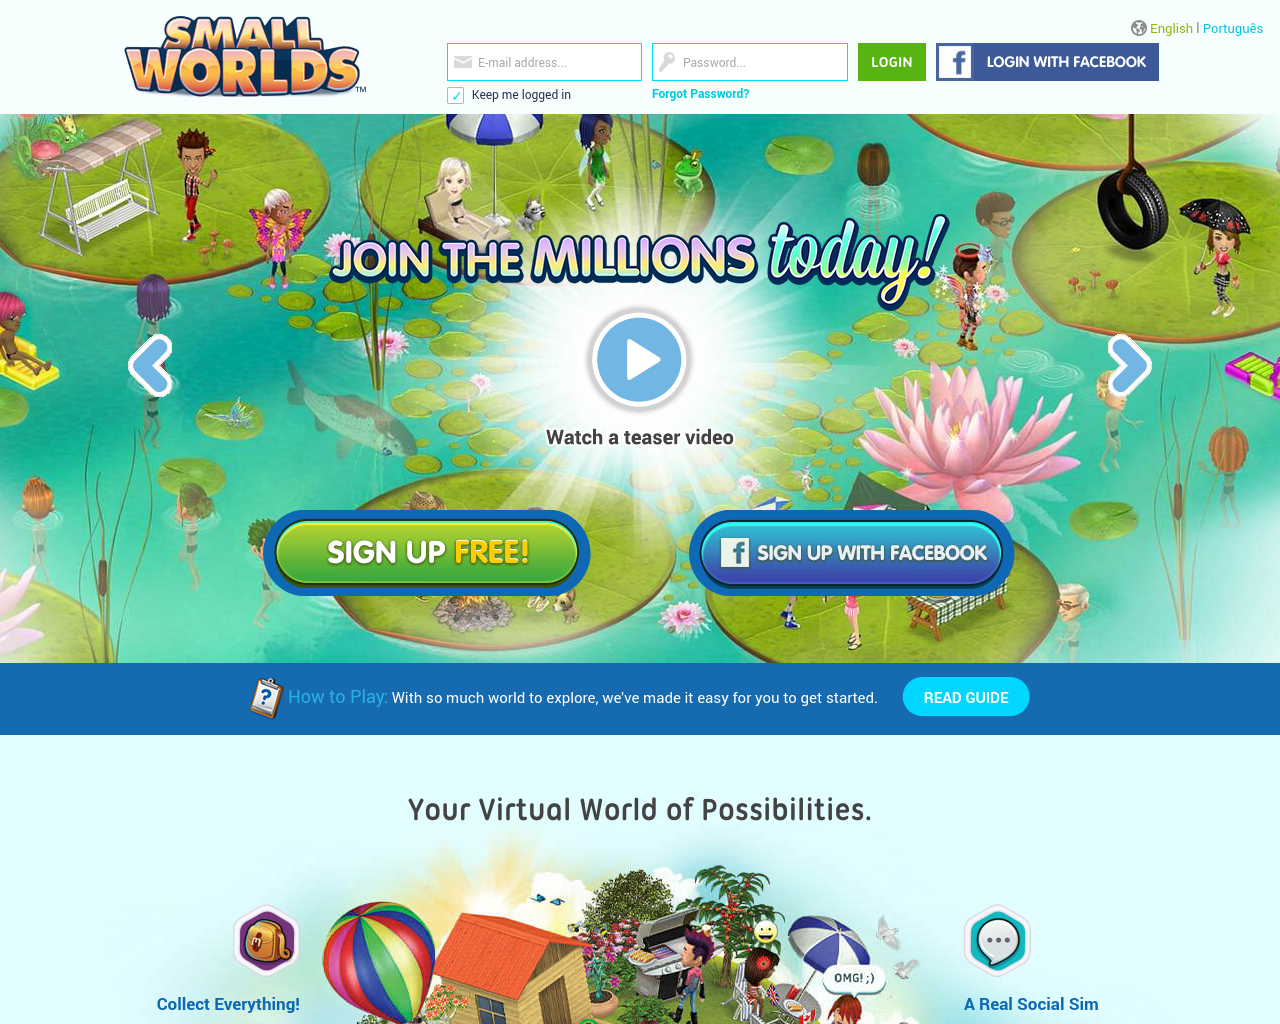 SmallWorlds-Advertising-Reviews-Pricing